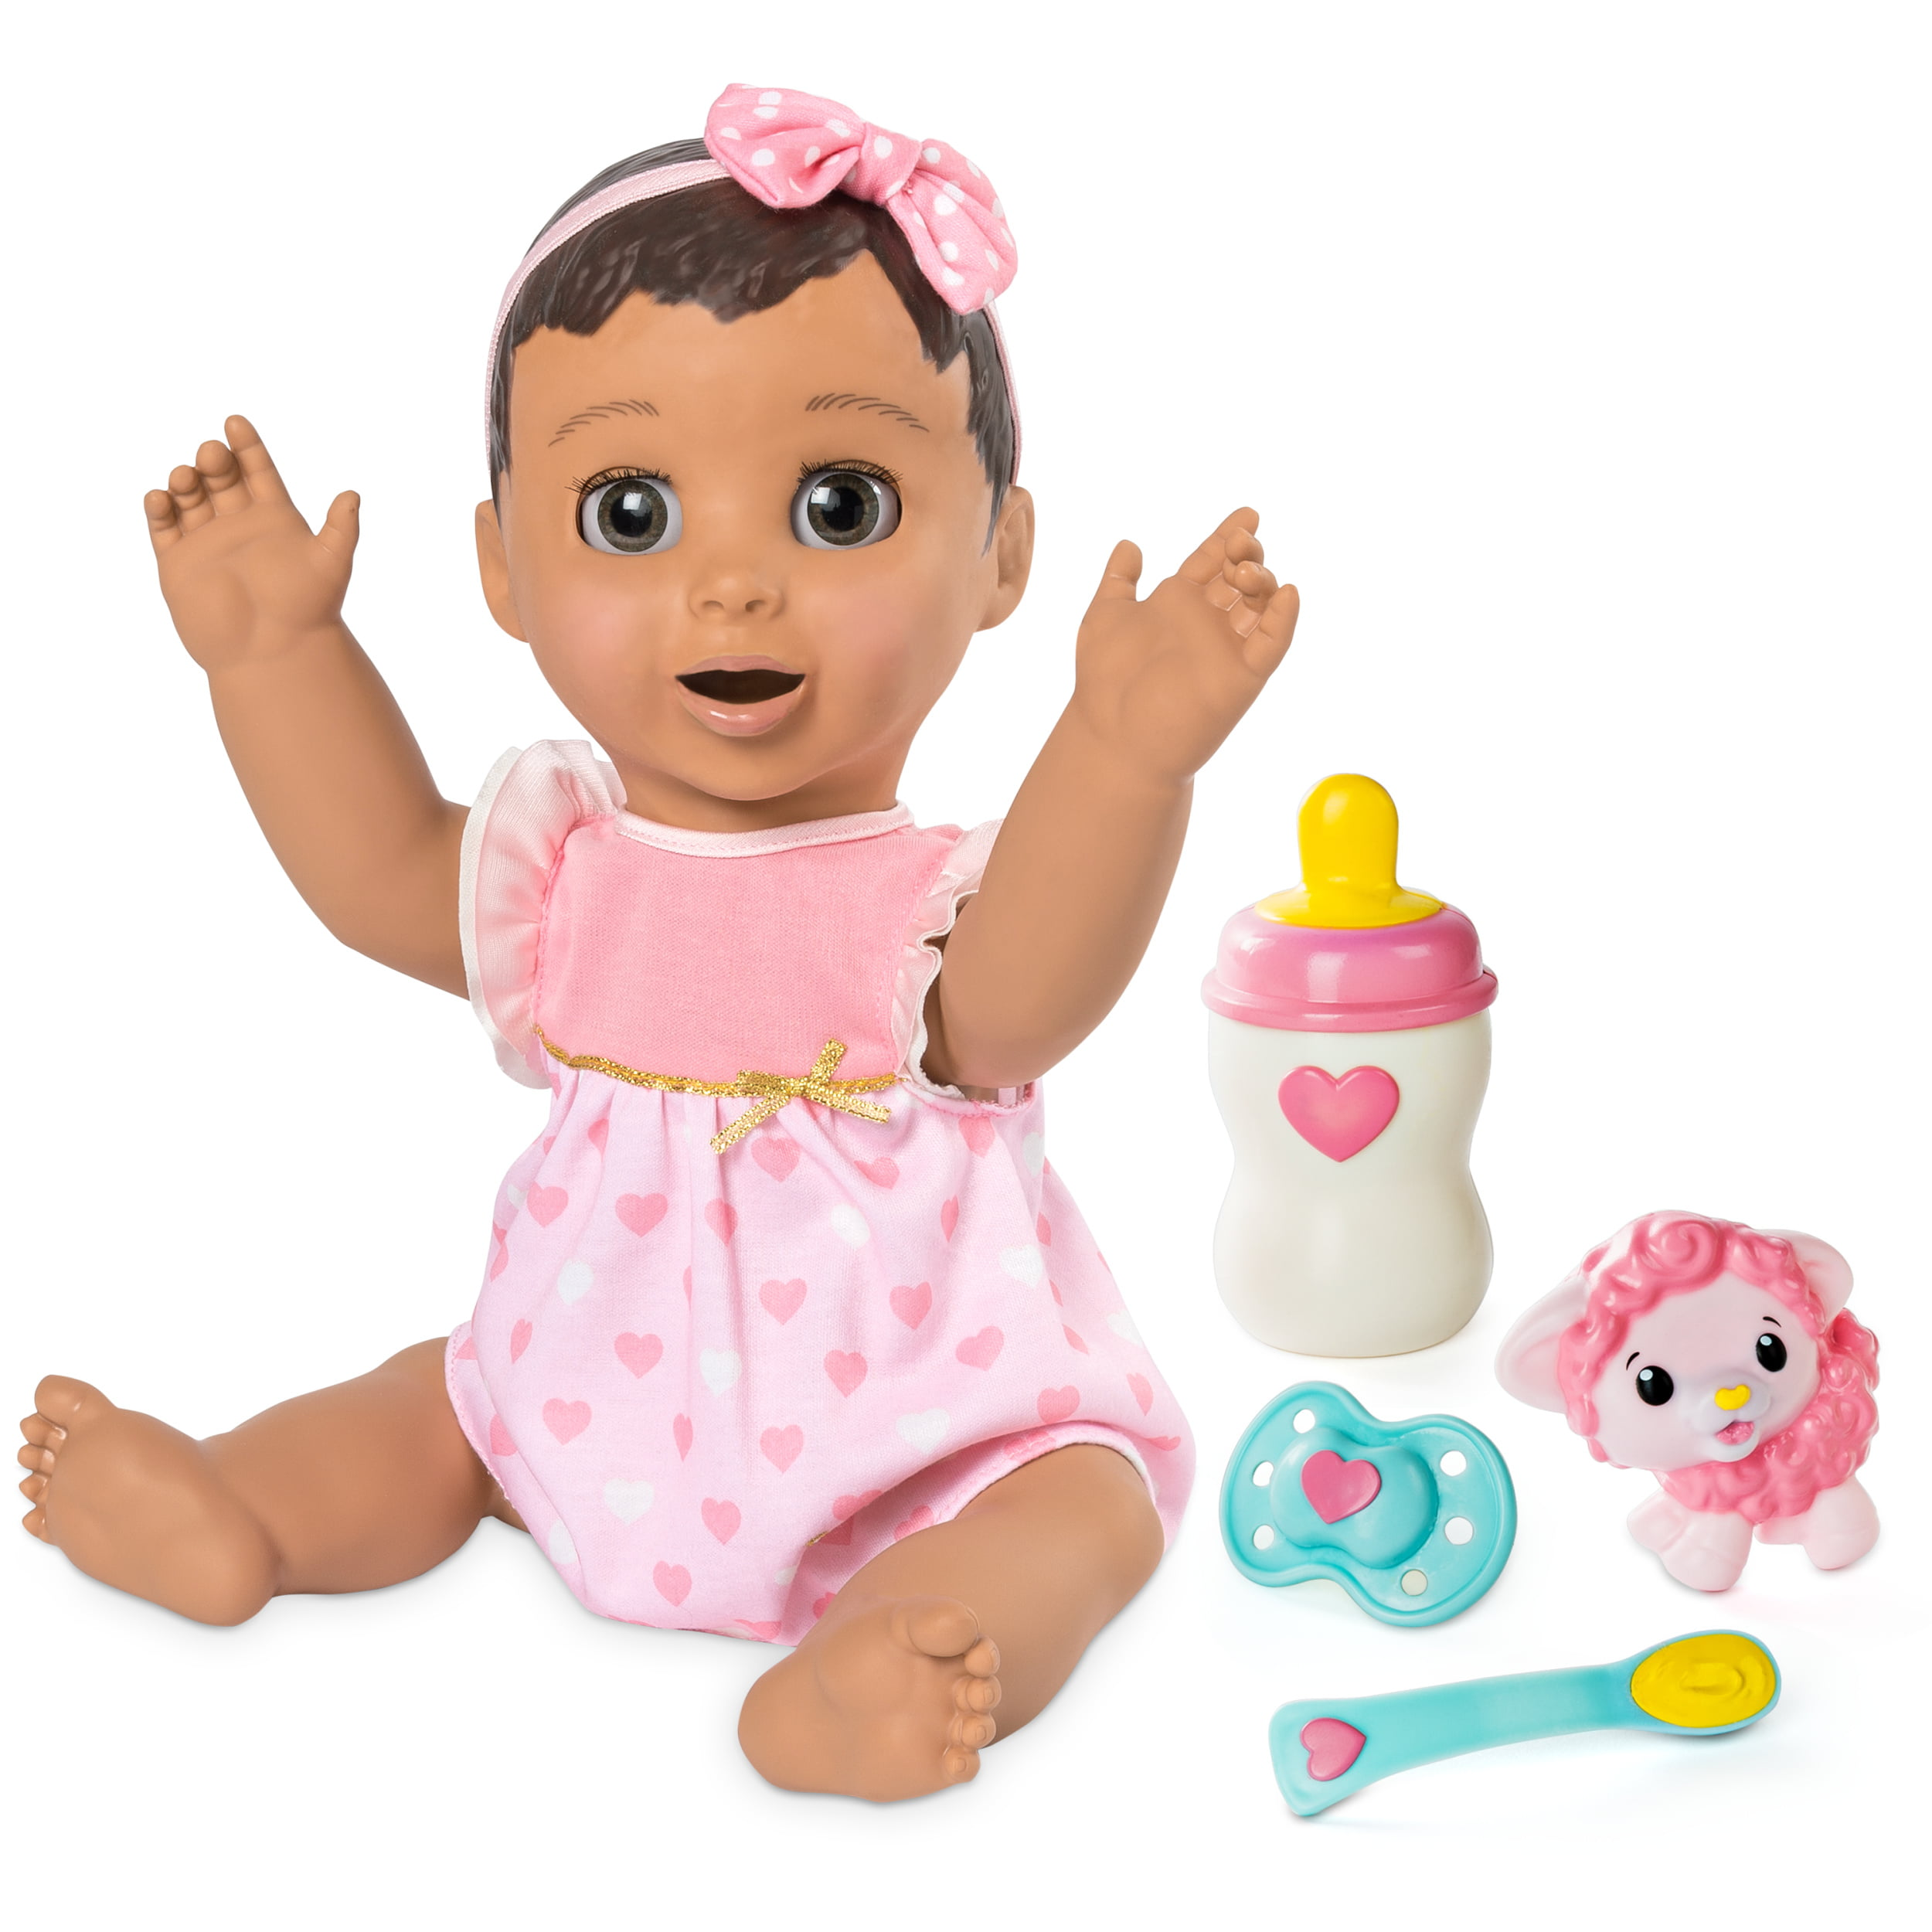 Luvabella Blonde Hair Responsive Baby Doll with Realistic Expressions and Movement by Spin Master Ltd